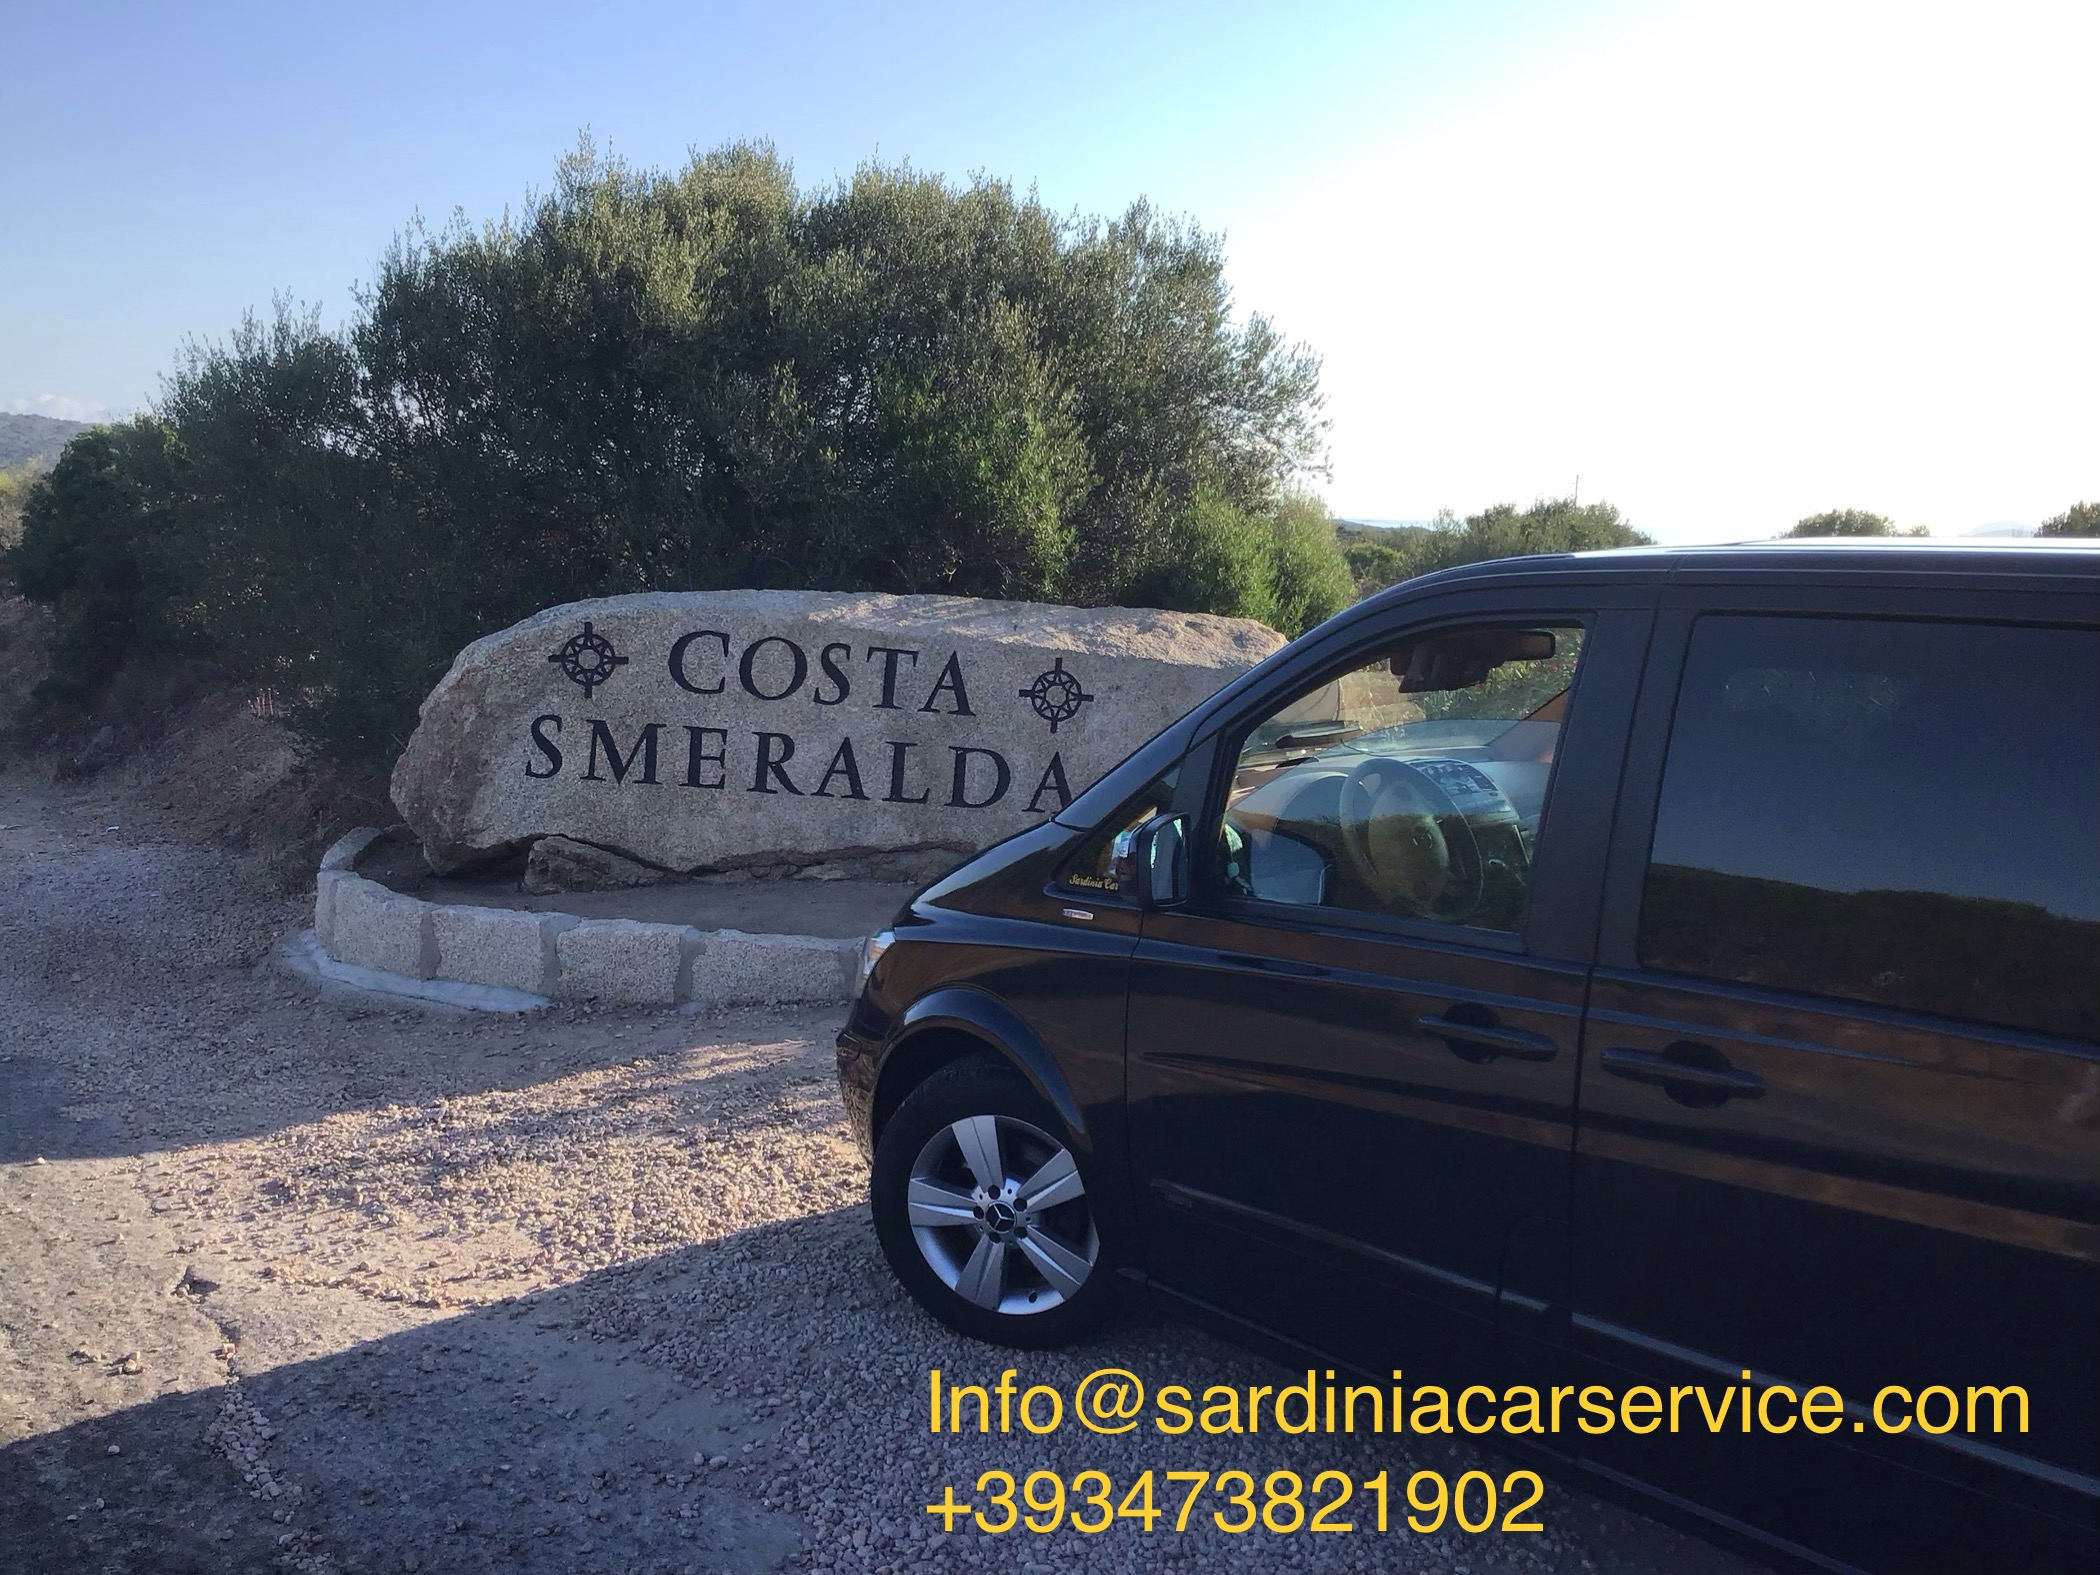 Tour Costa Smeralda Full Day